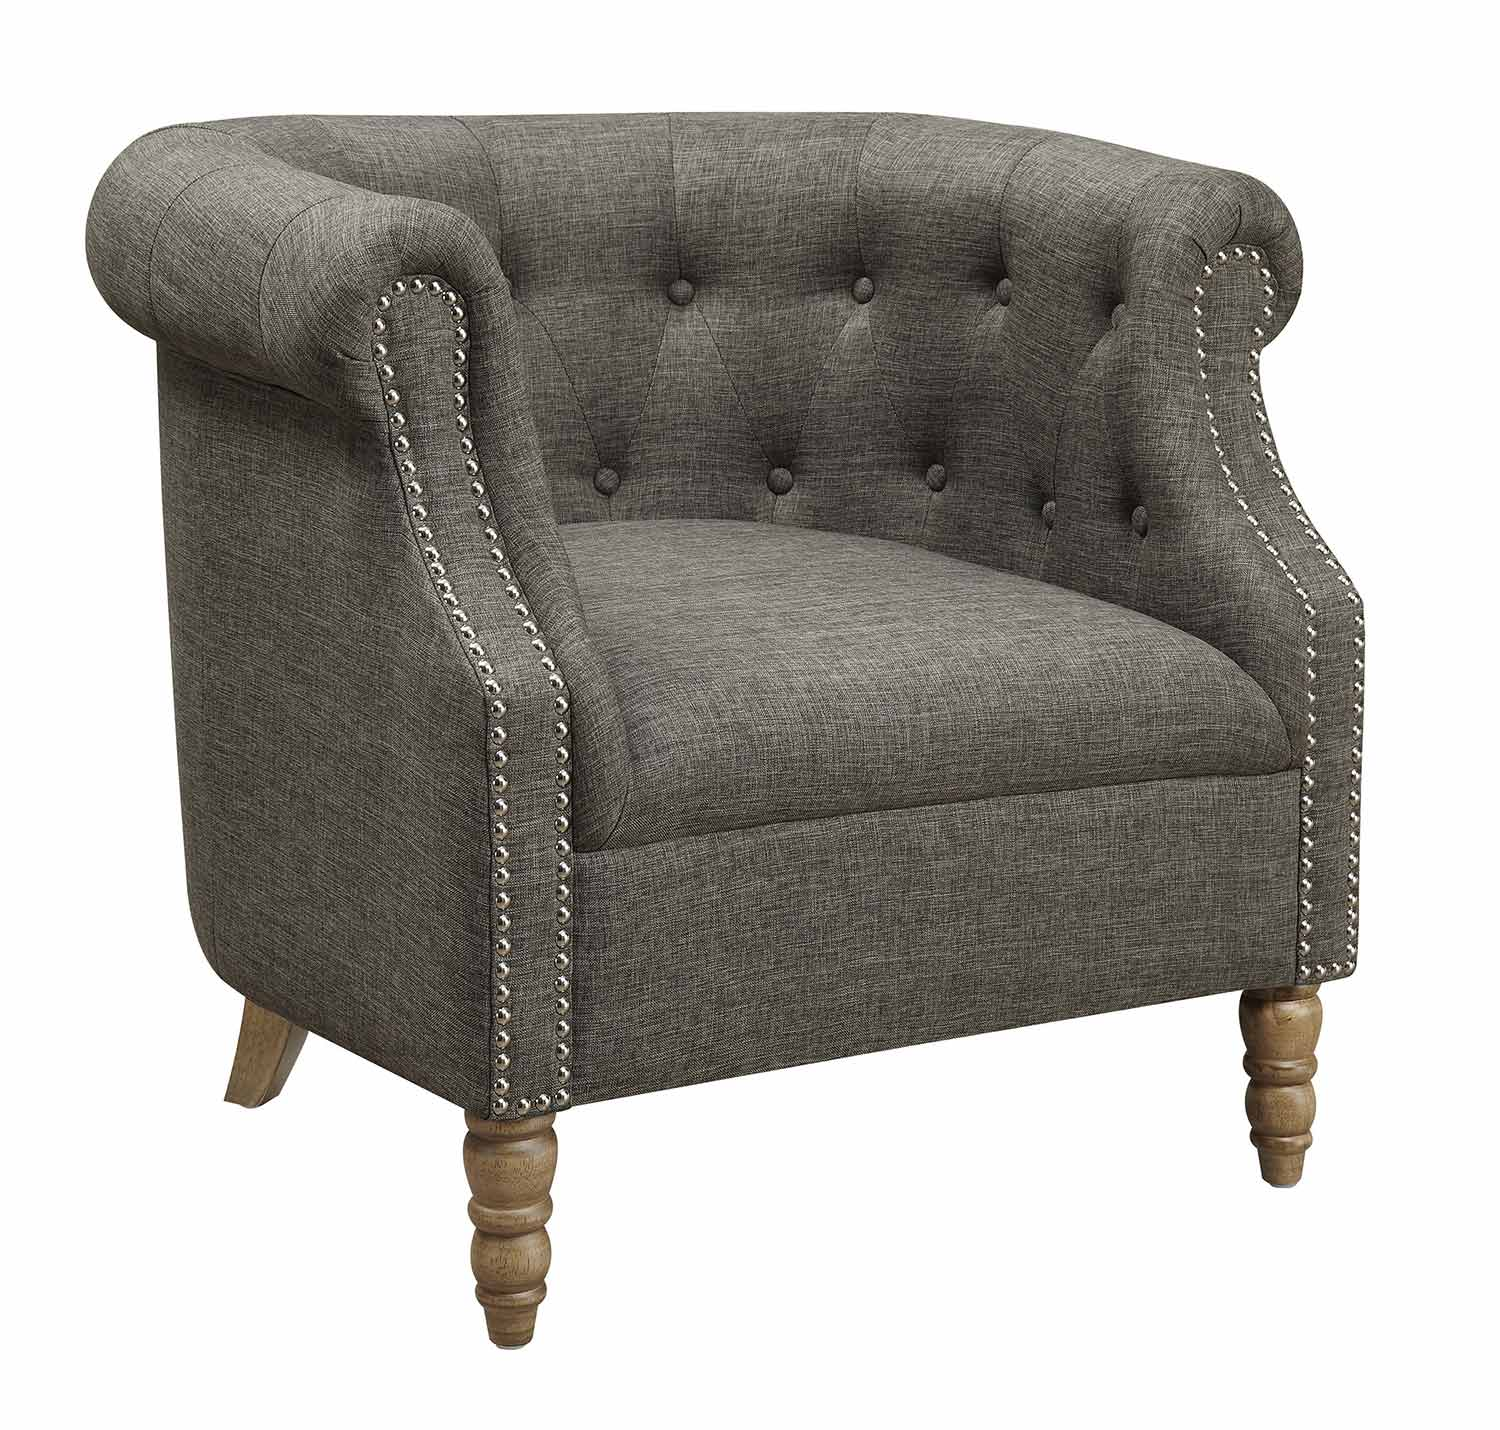 Coaster 902696 Accent Chair - Grey